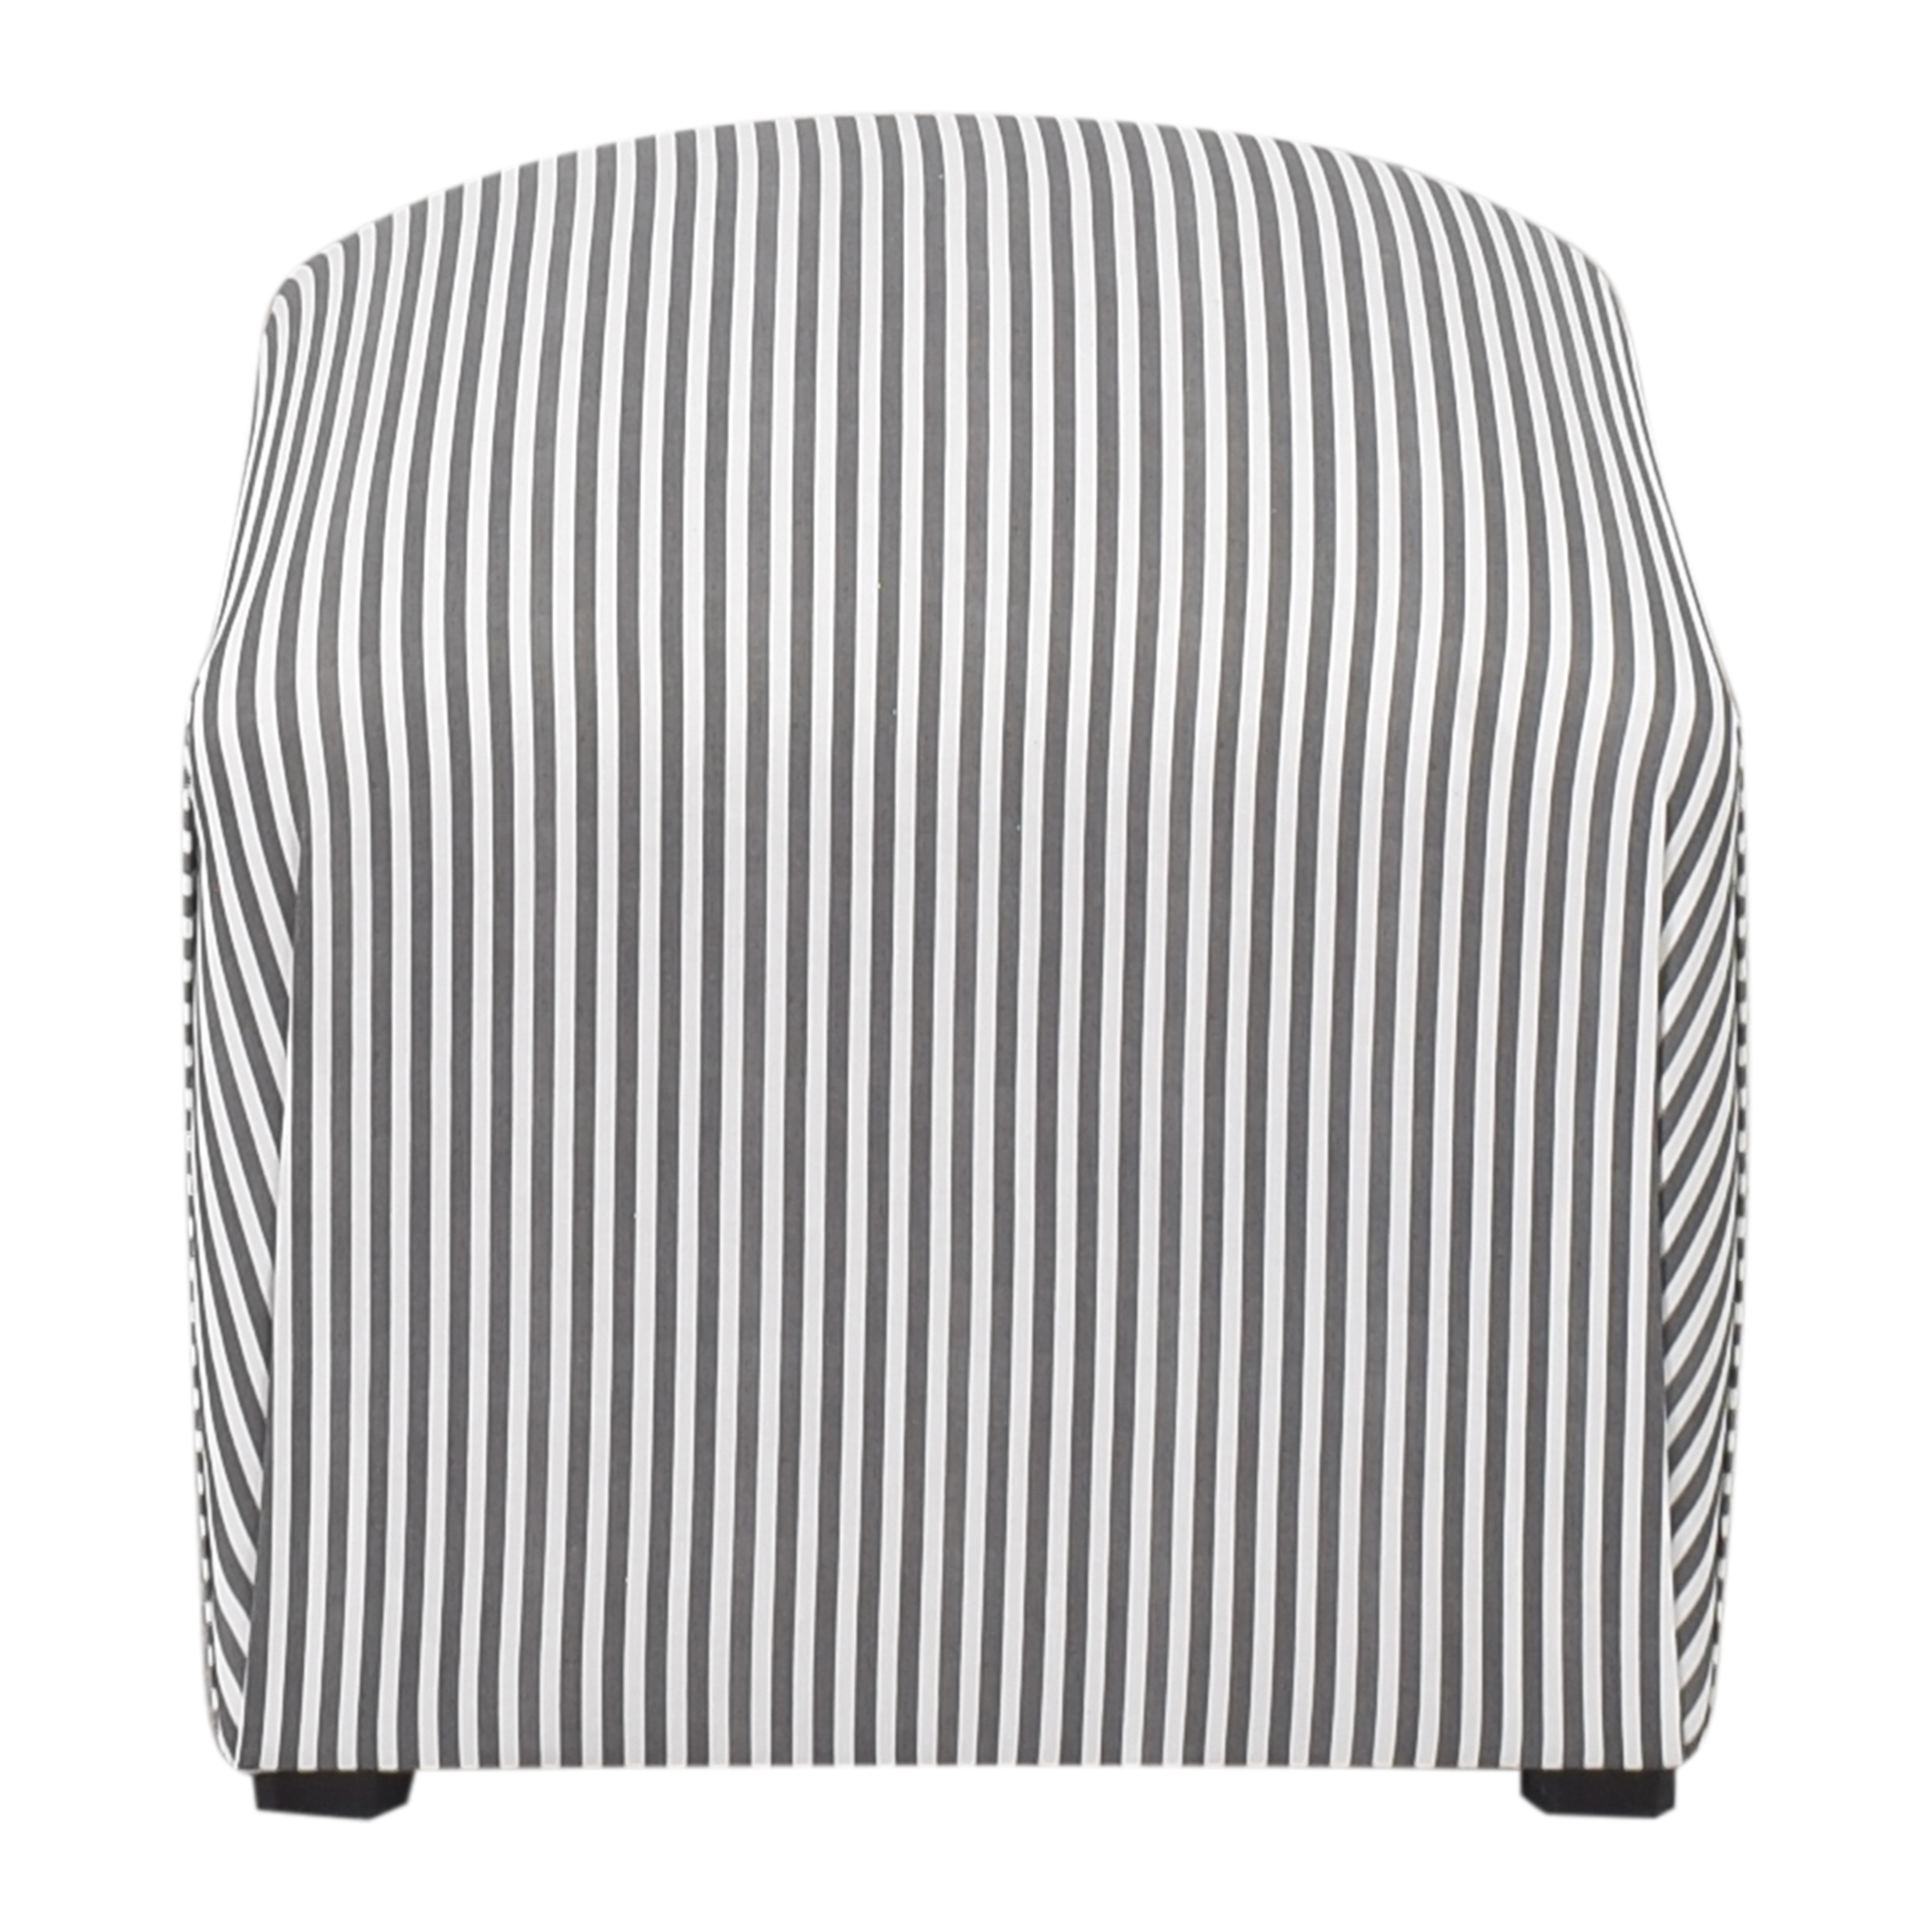 The Inside The Inside Ticking Stripe Deco Ottoman on sale